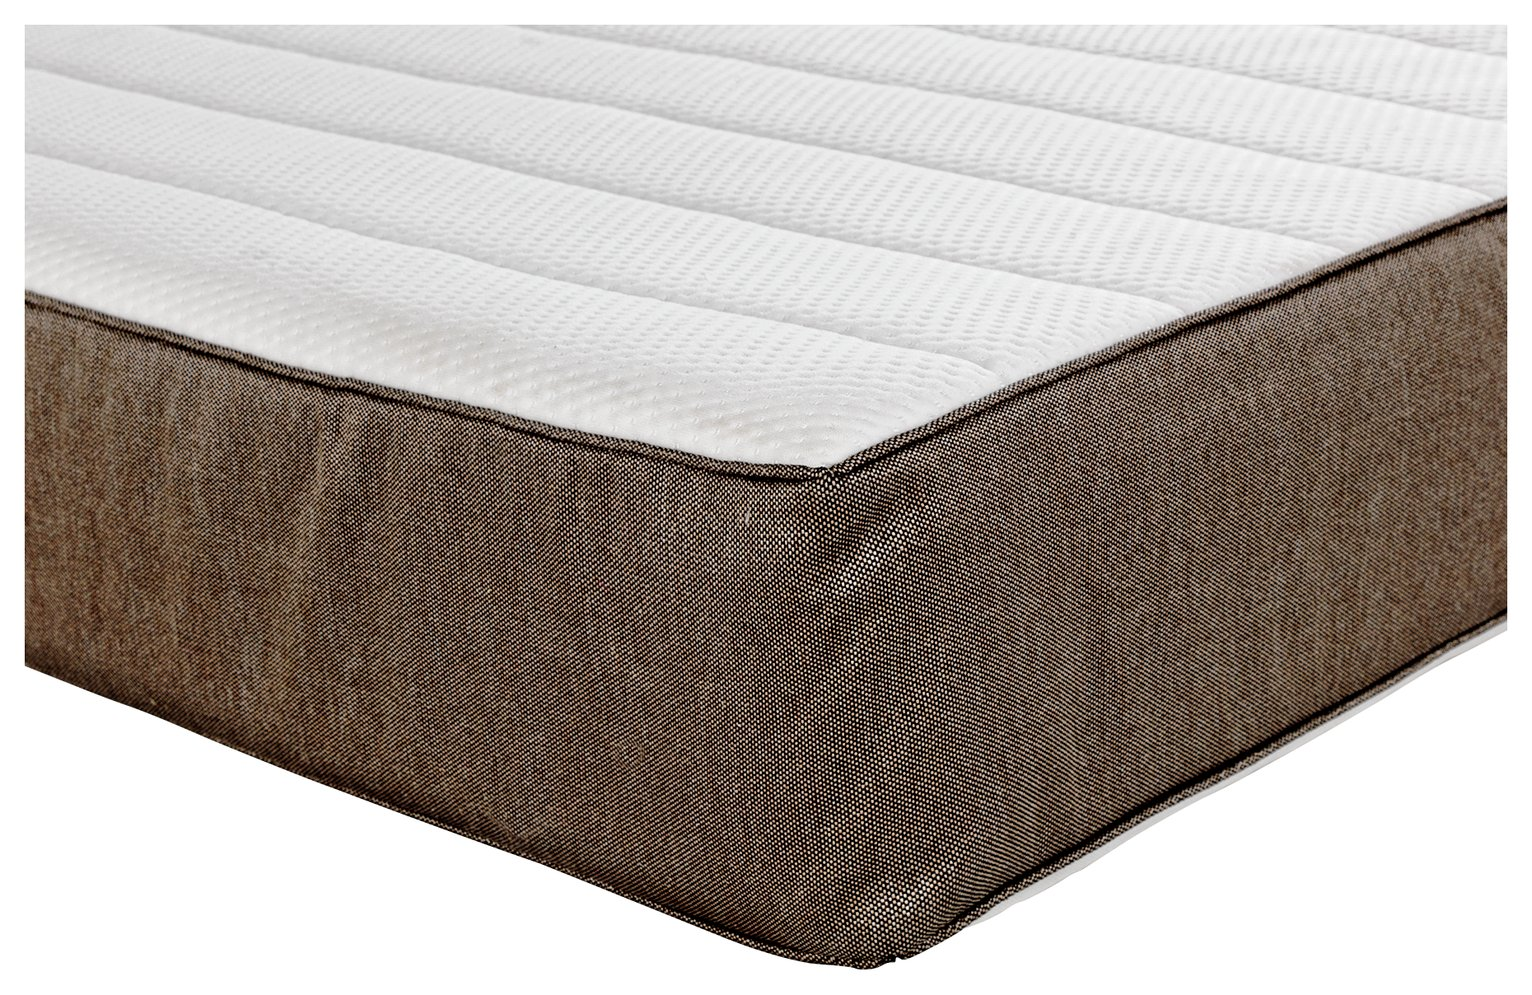 Argos Home Open Coil Double Mattress